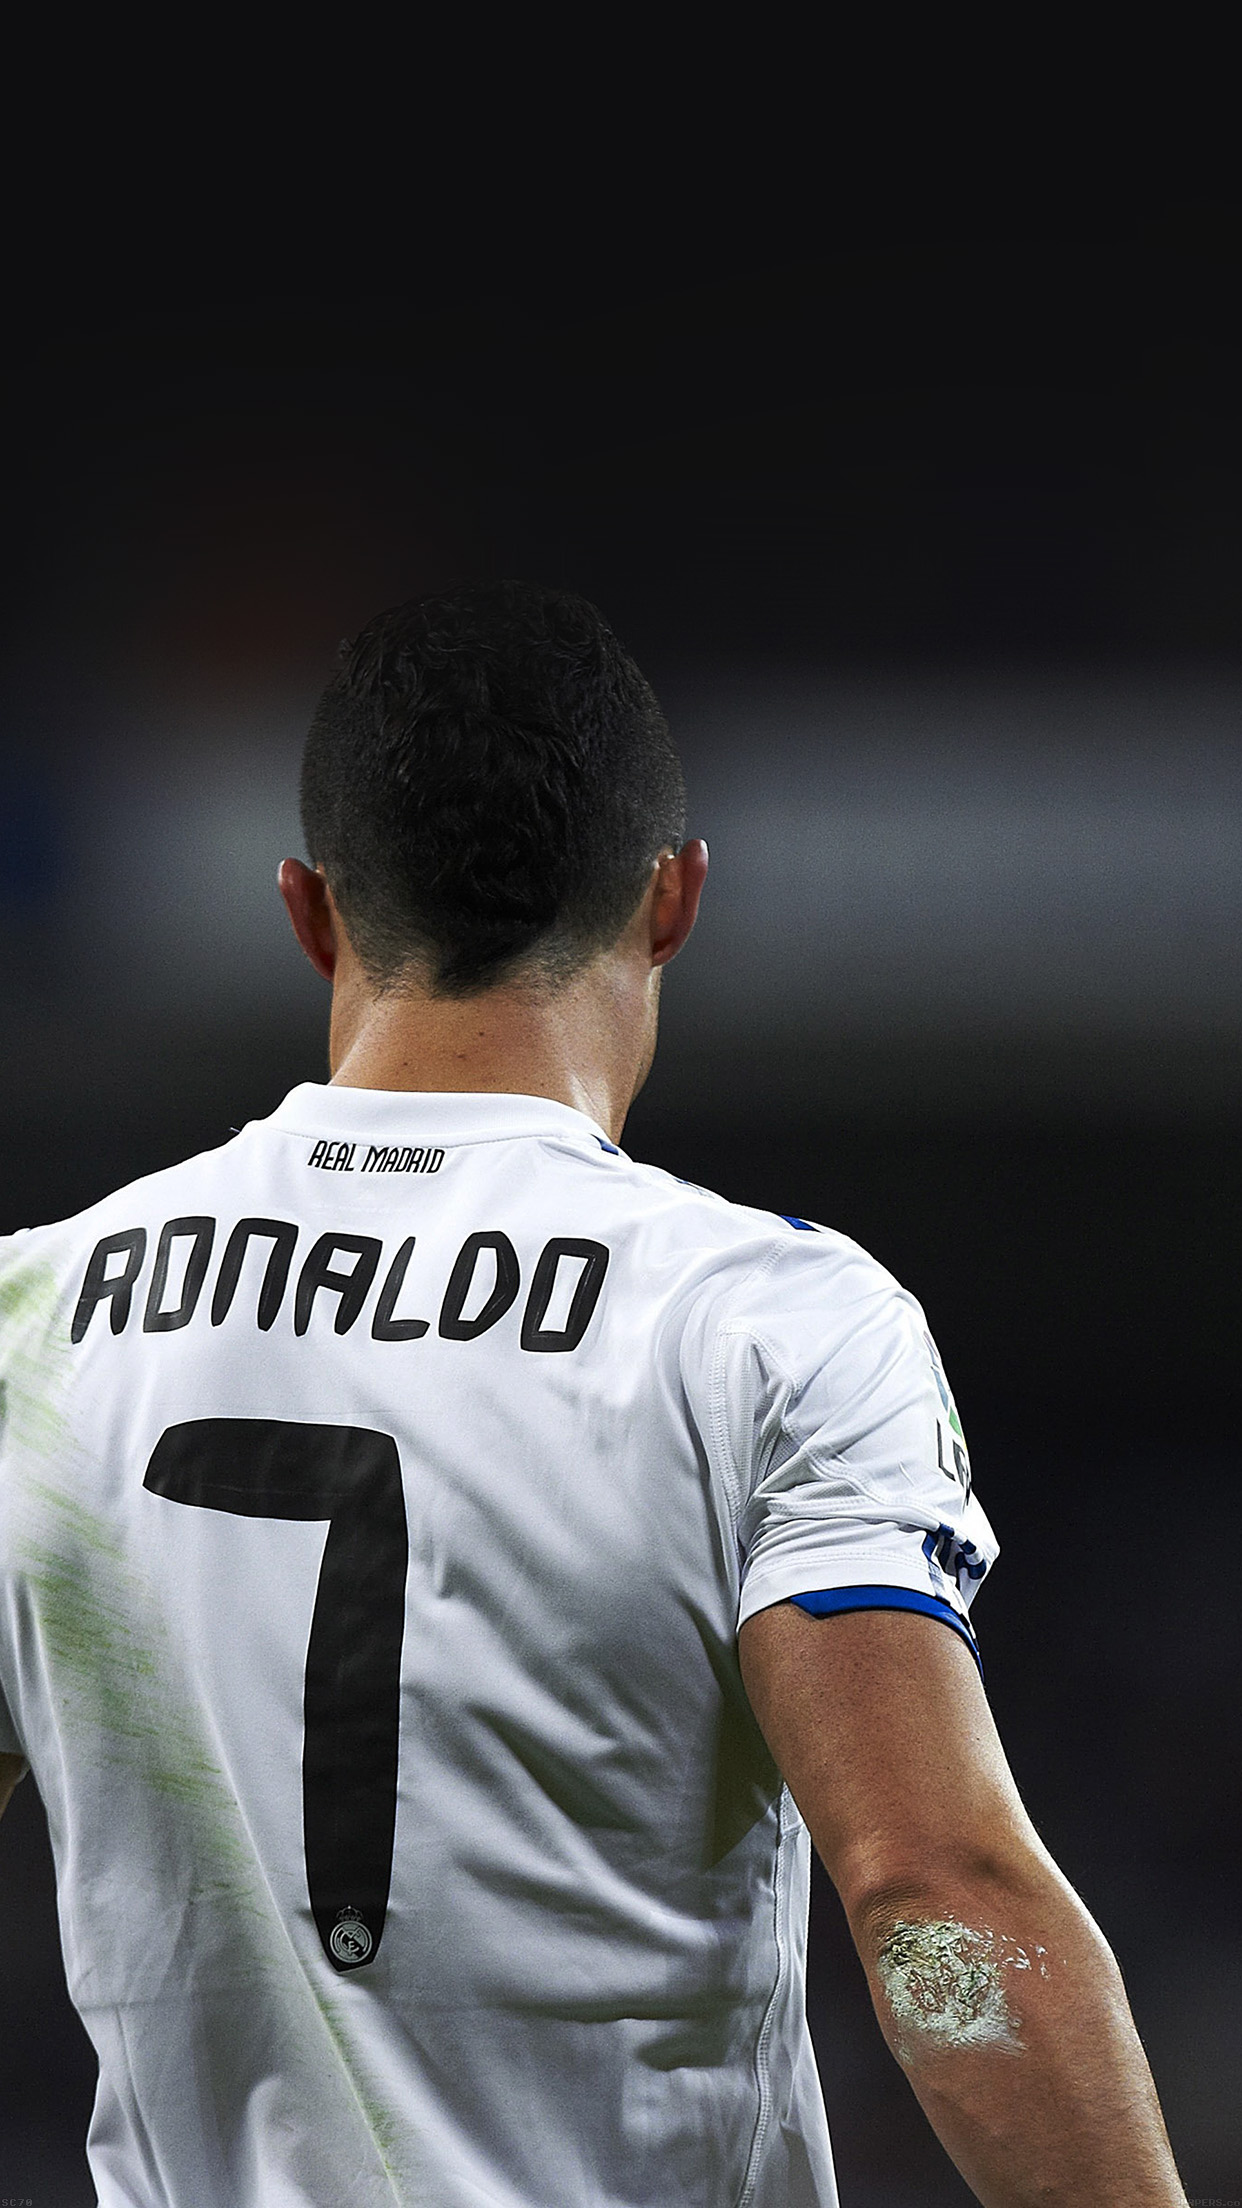 cristiano ronaldo 7 real madrid soccer android wallpaper android hd wallpapers